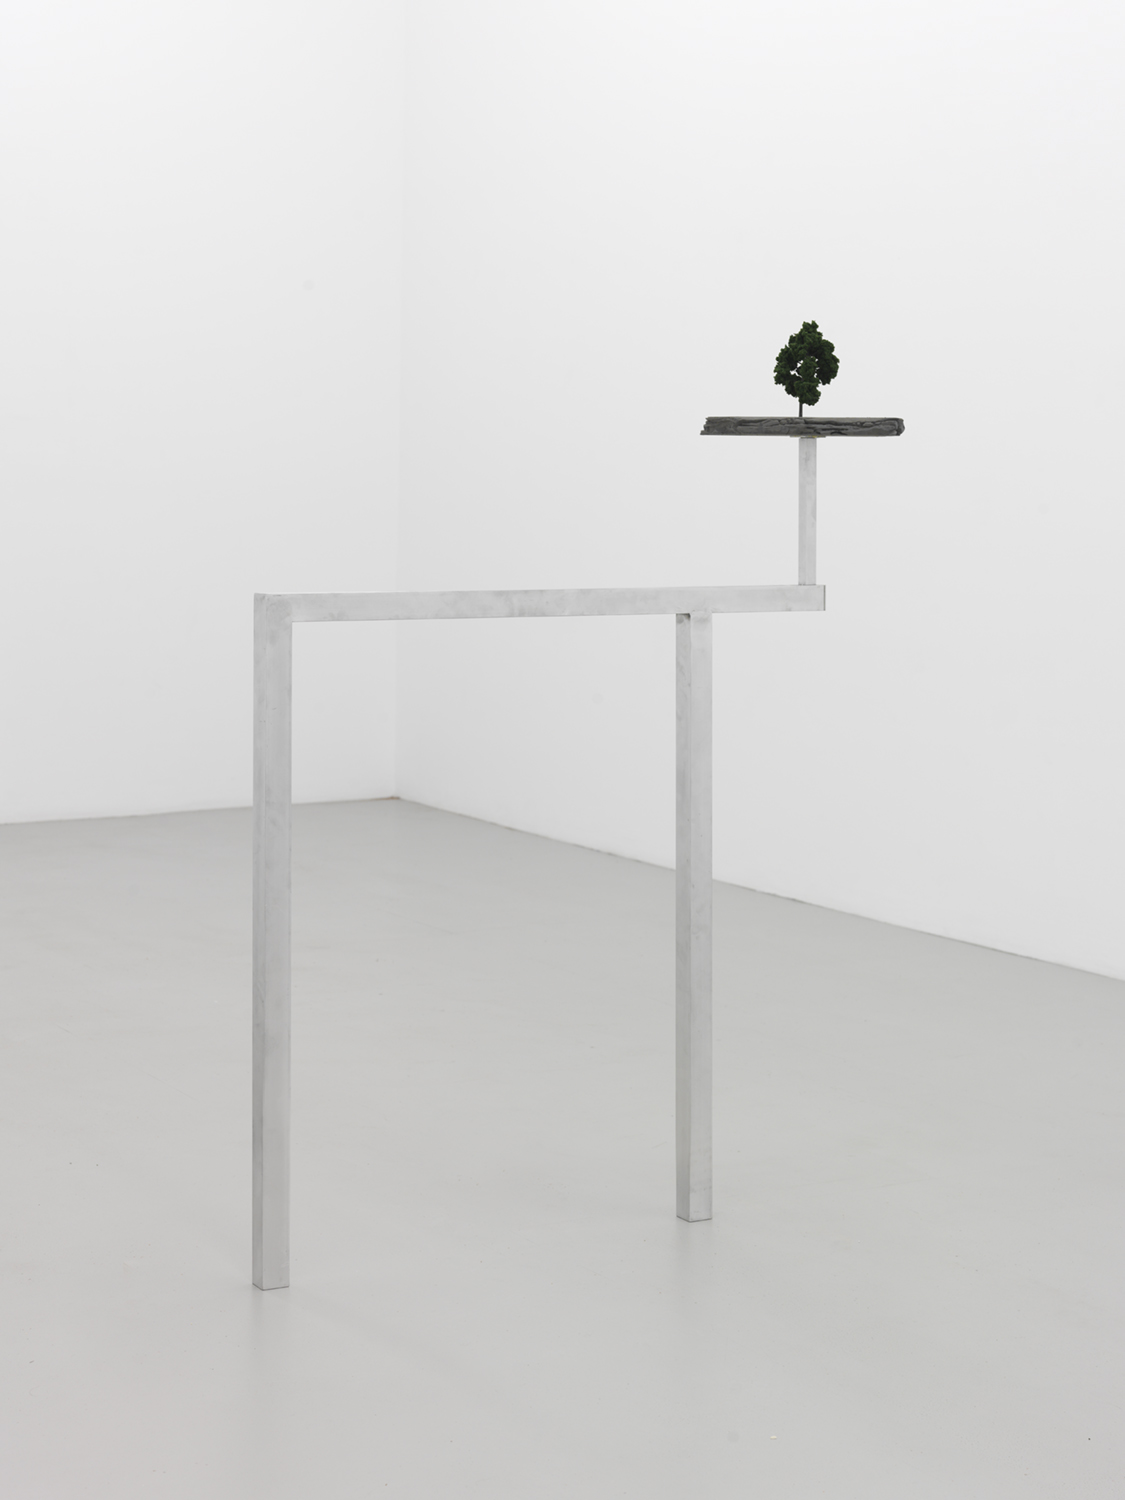 Proposal (Lets Get Out of The City) , 2015 Aluminum, foam, iron powder and plastic 50 x 42 x 2 inches